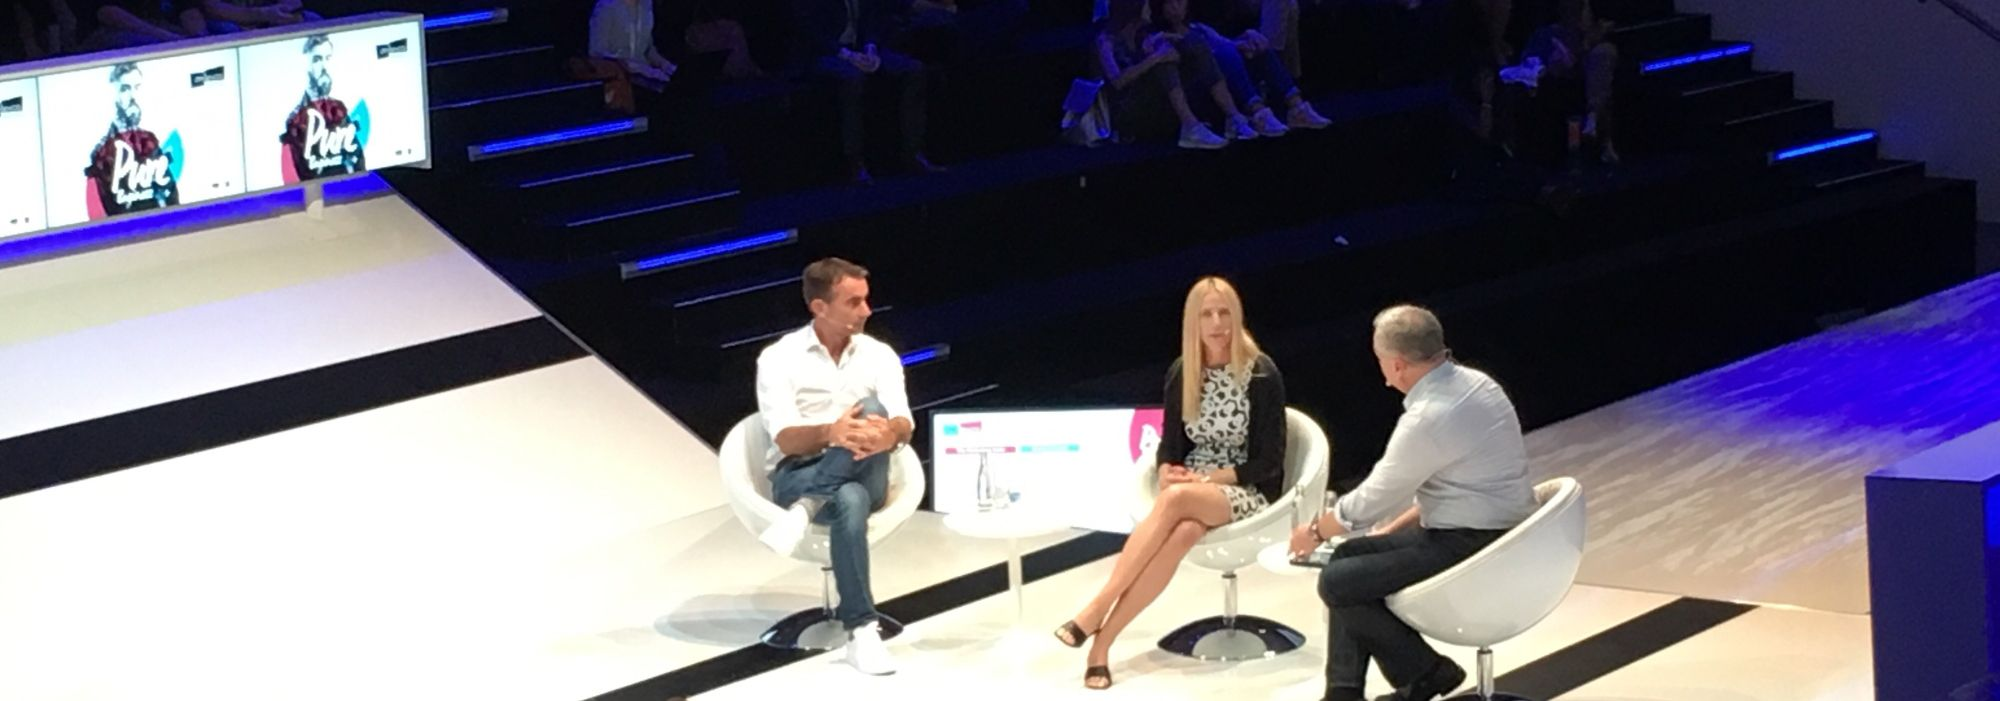 DMEXCO 2016, after day 2